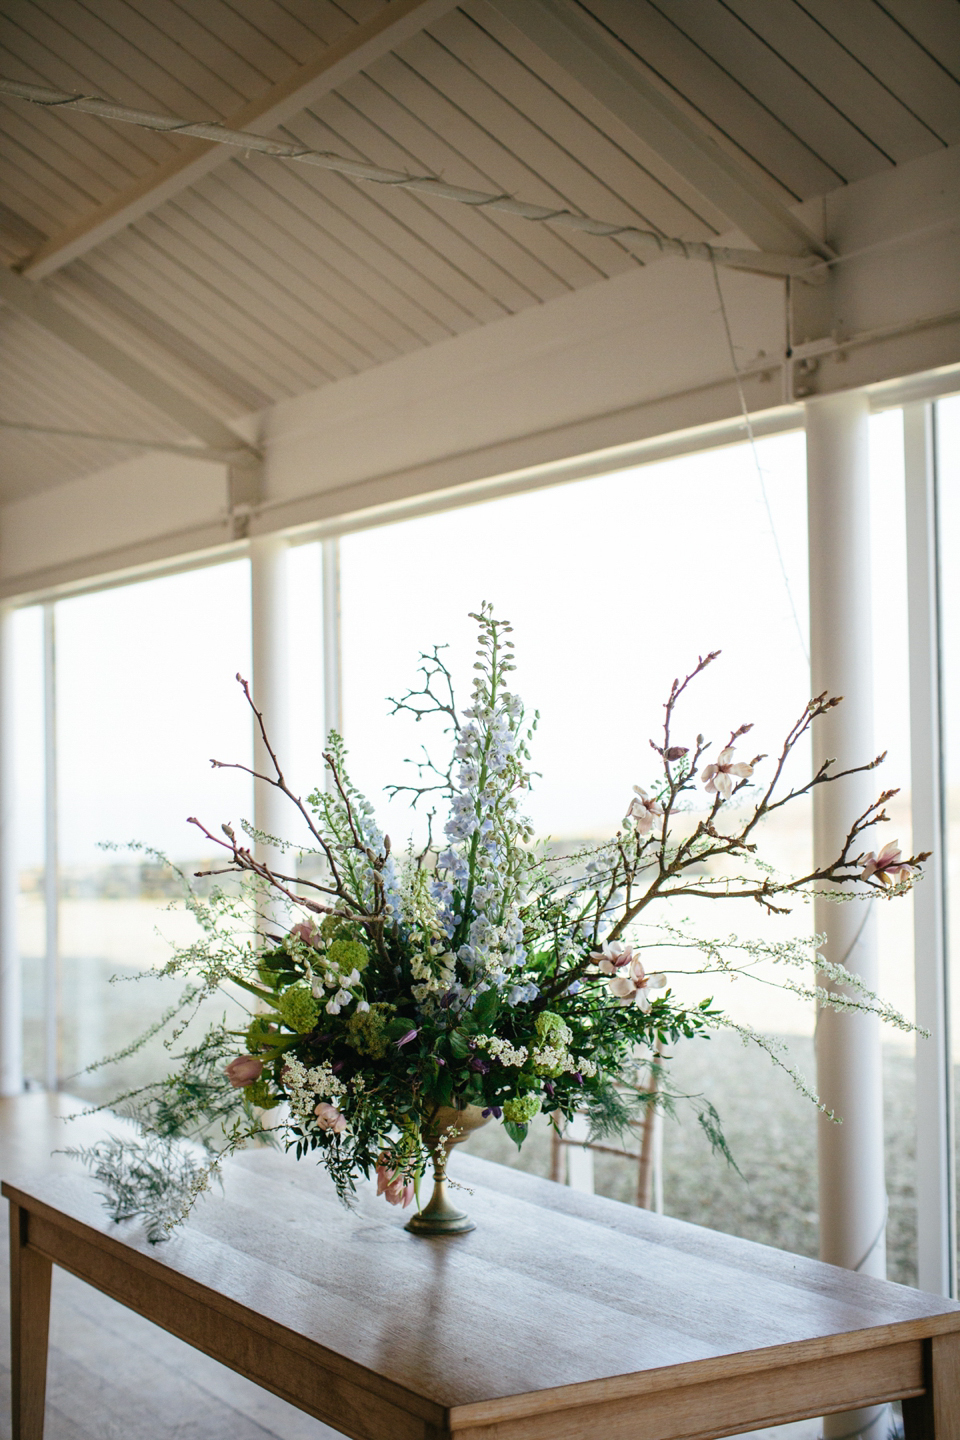 The Florist and The Fiddler ~ A Floral and Musical Inspired Wedding at Crear in Scotland (Films )